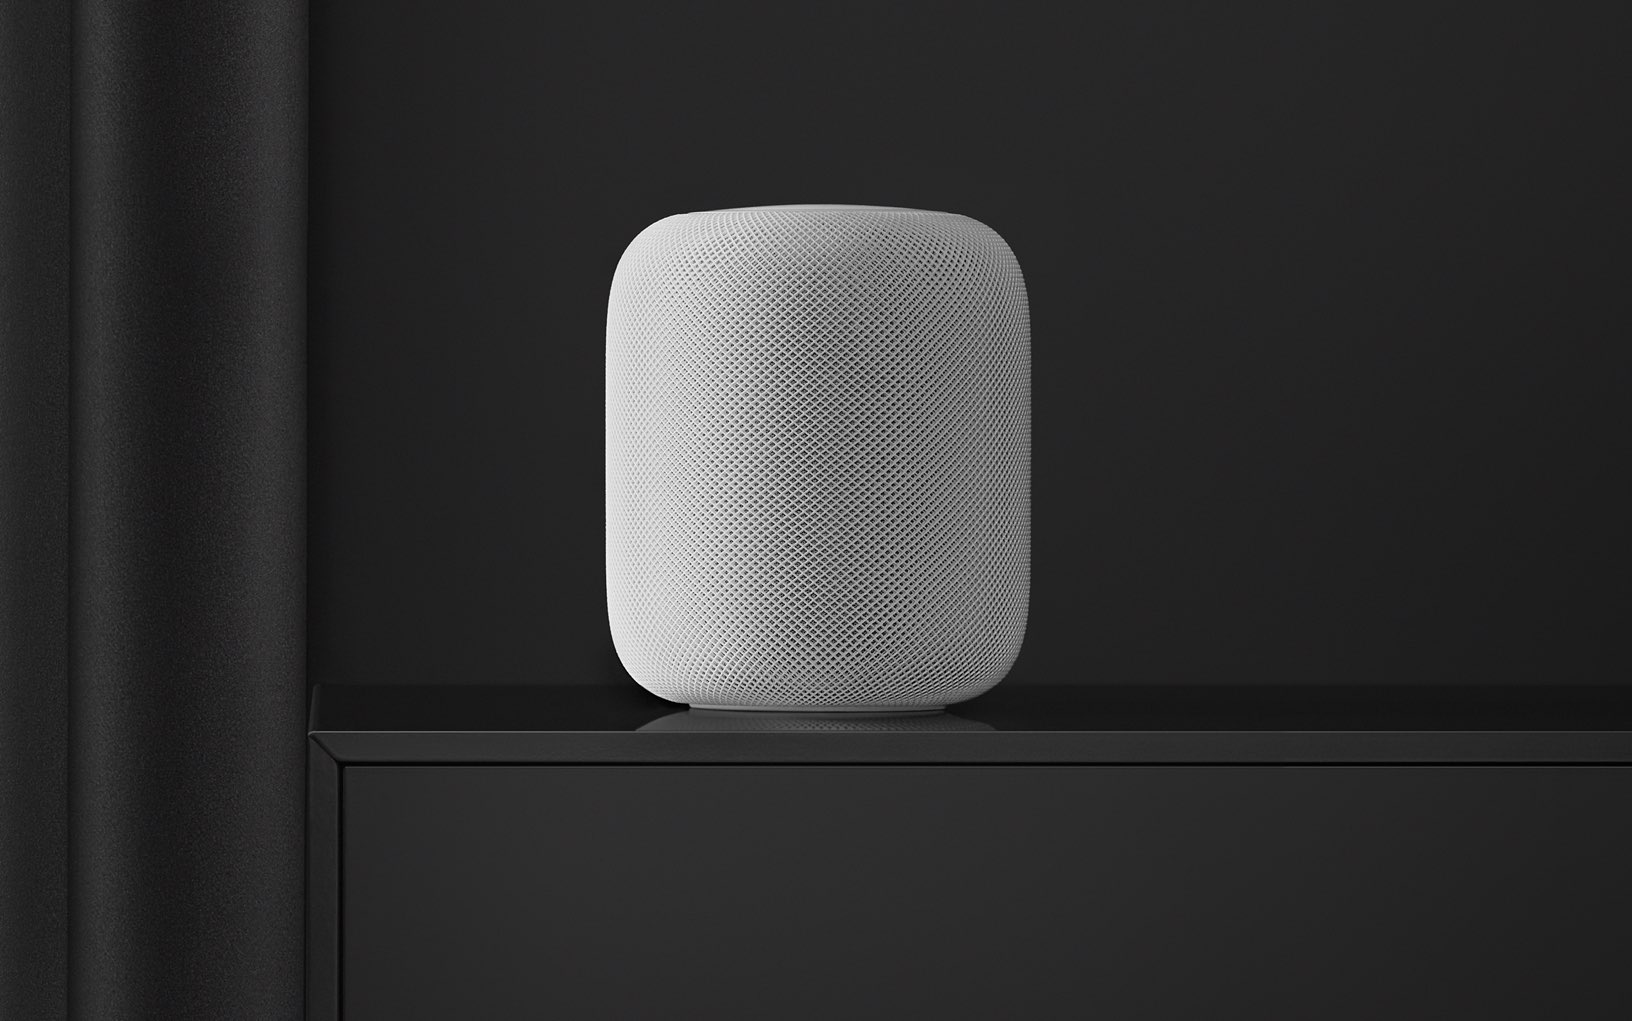 HomePod is launching in Canada, France and Germany on June 18